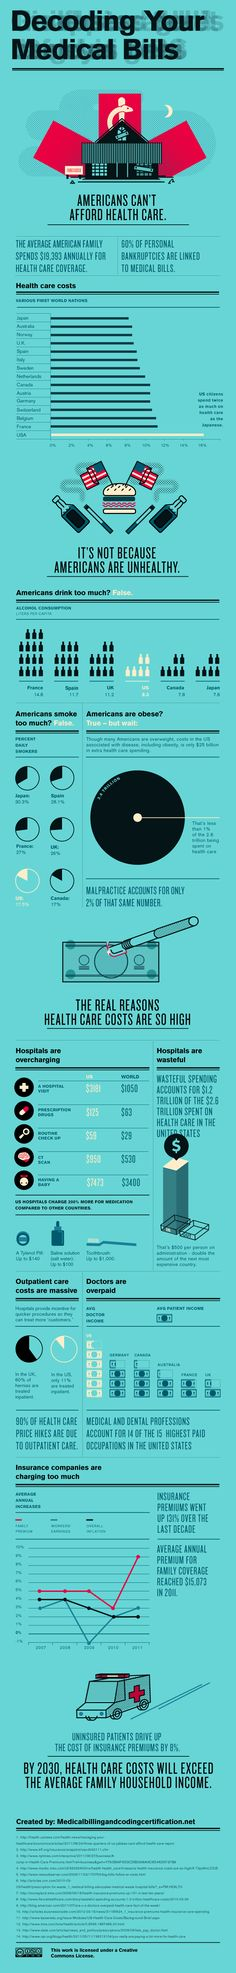 Decoding Your Medical Bills - Created by: Medical Billing and Coding Certification Coding Certification, Health And Wellness, Health Care, Design Presentation, Medical Billing And Coding, Healthcare News, Care Organization, Lab, Medical Information